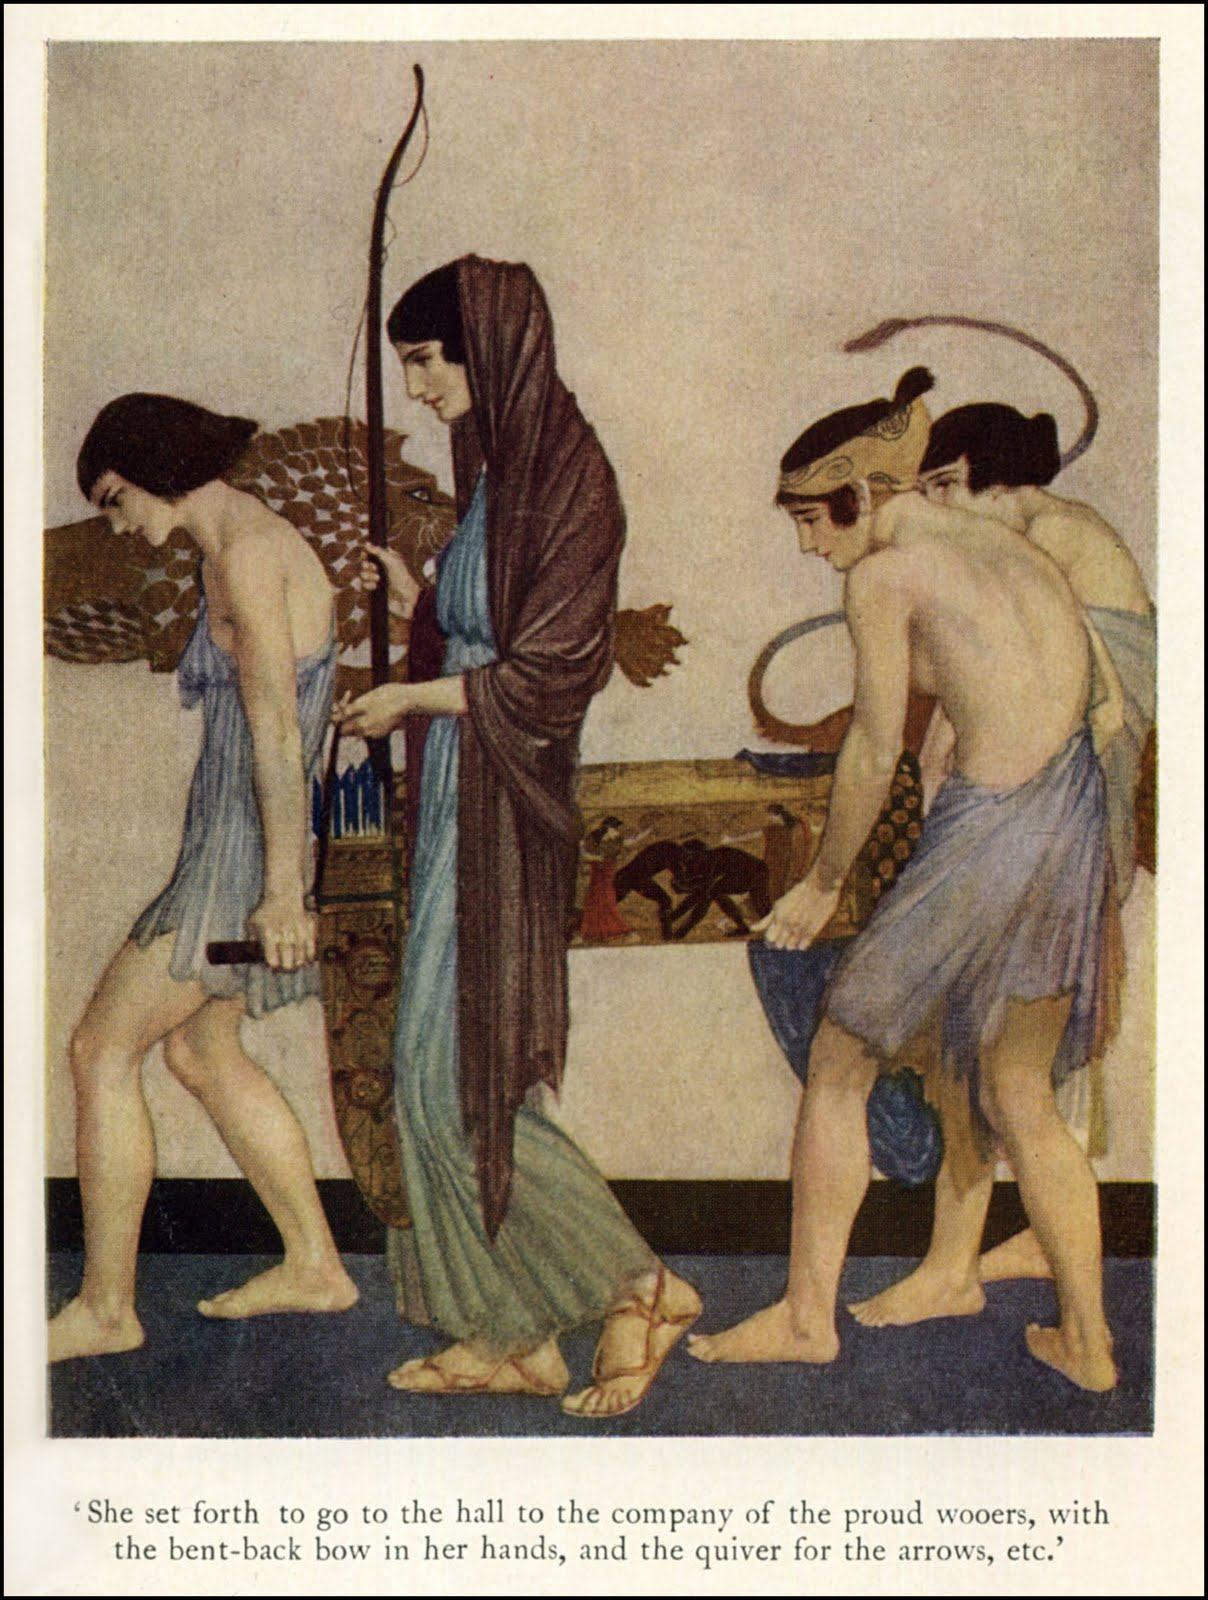 an examination of the women in the odyssey Epic poems reflect a culture's values the female characters in homer's poem, the odyssey, reflect the ancient greek values of helpfulness, loyalty and cleverness.